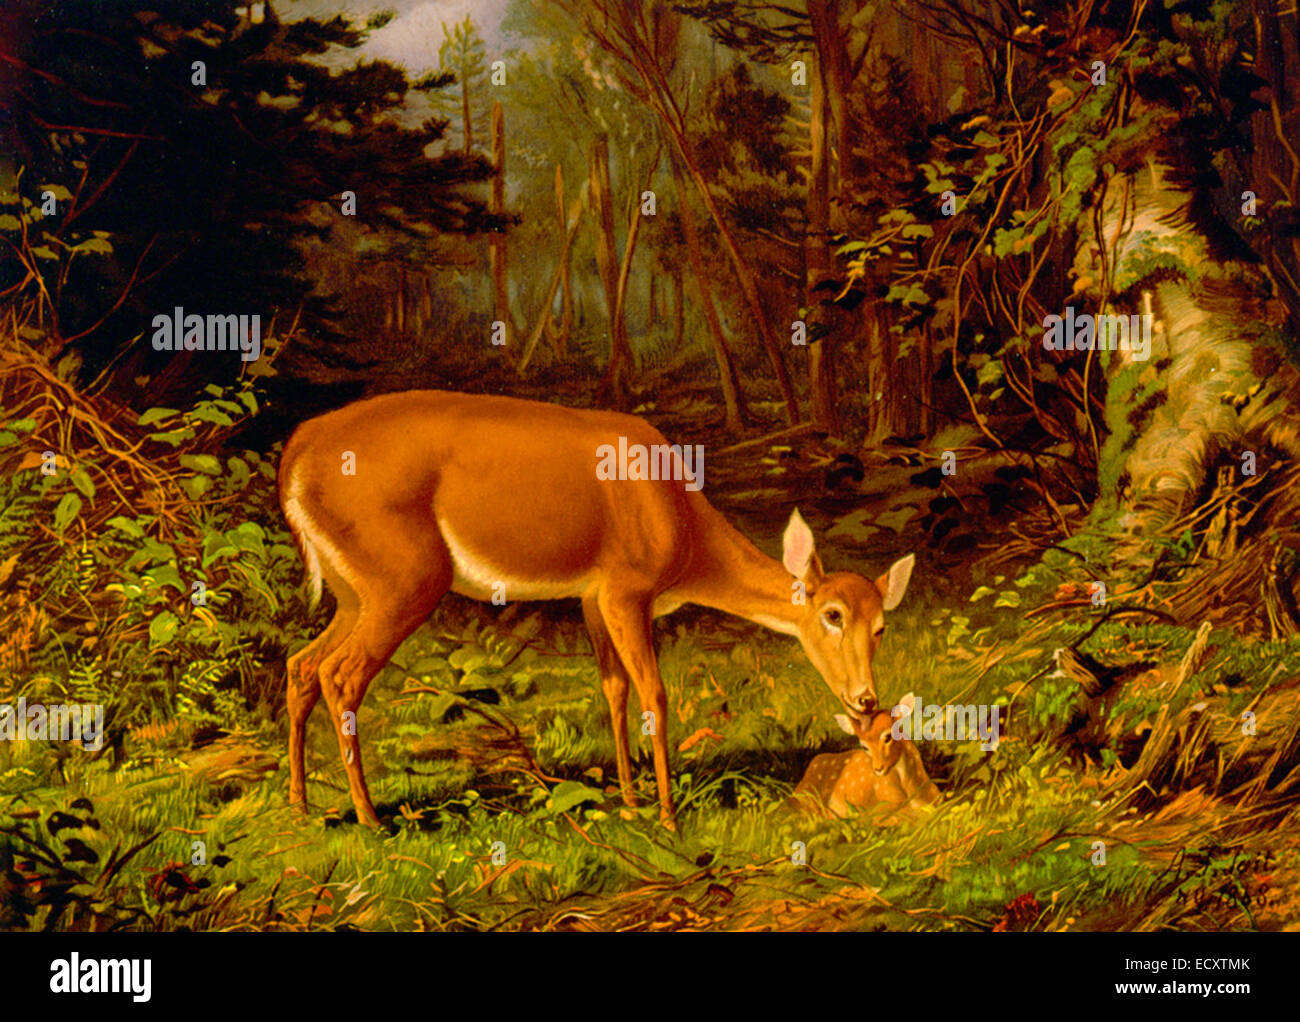 Maternal Love - A doe taking care of a fawn - Stock Image